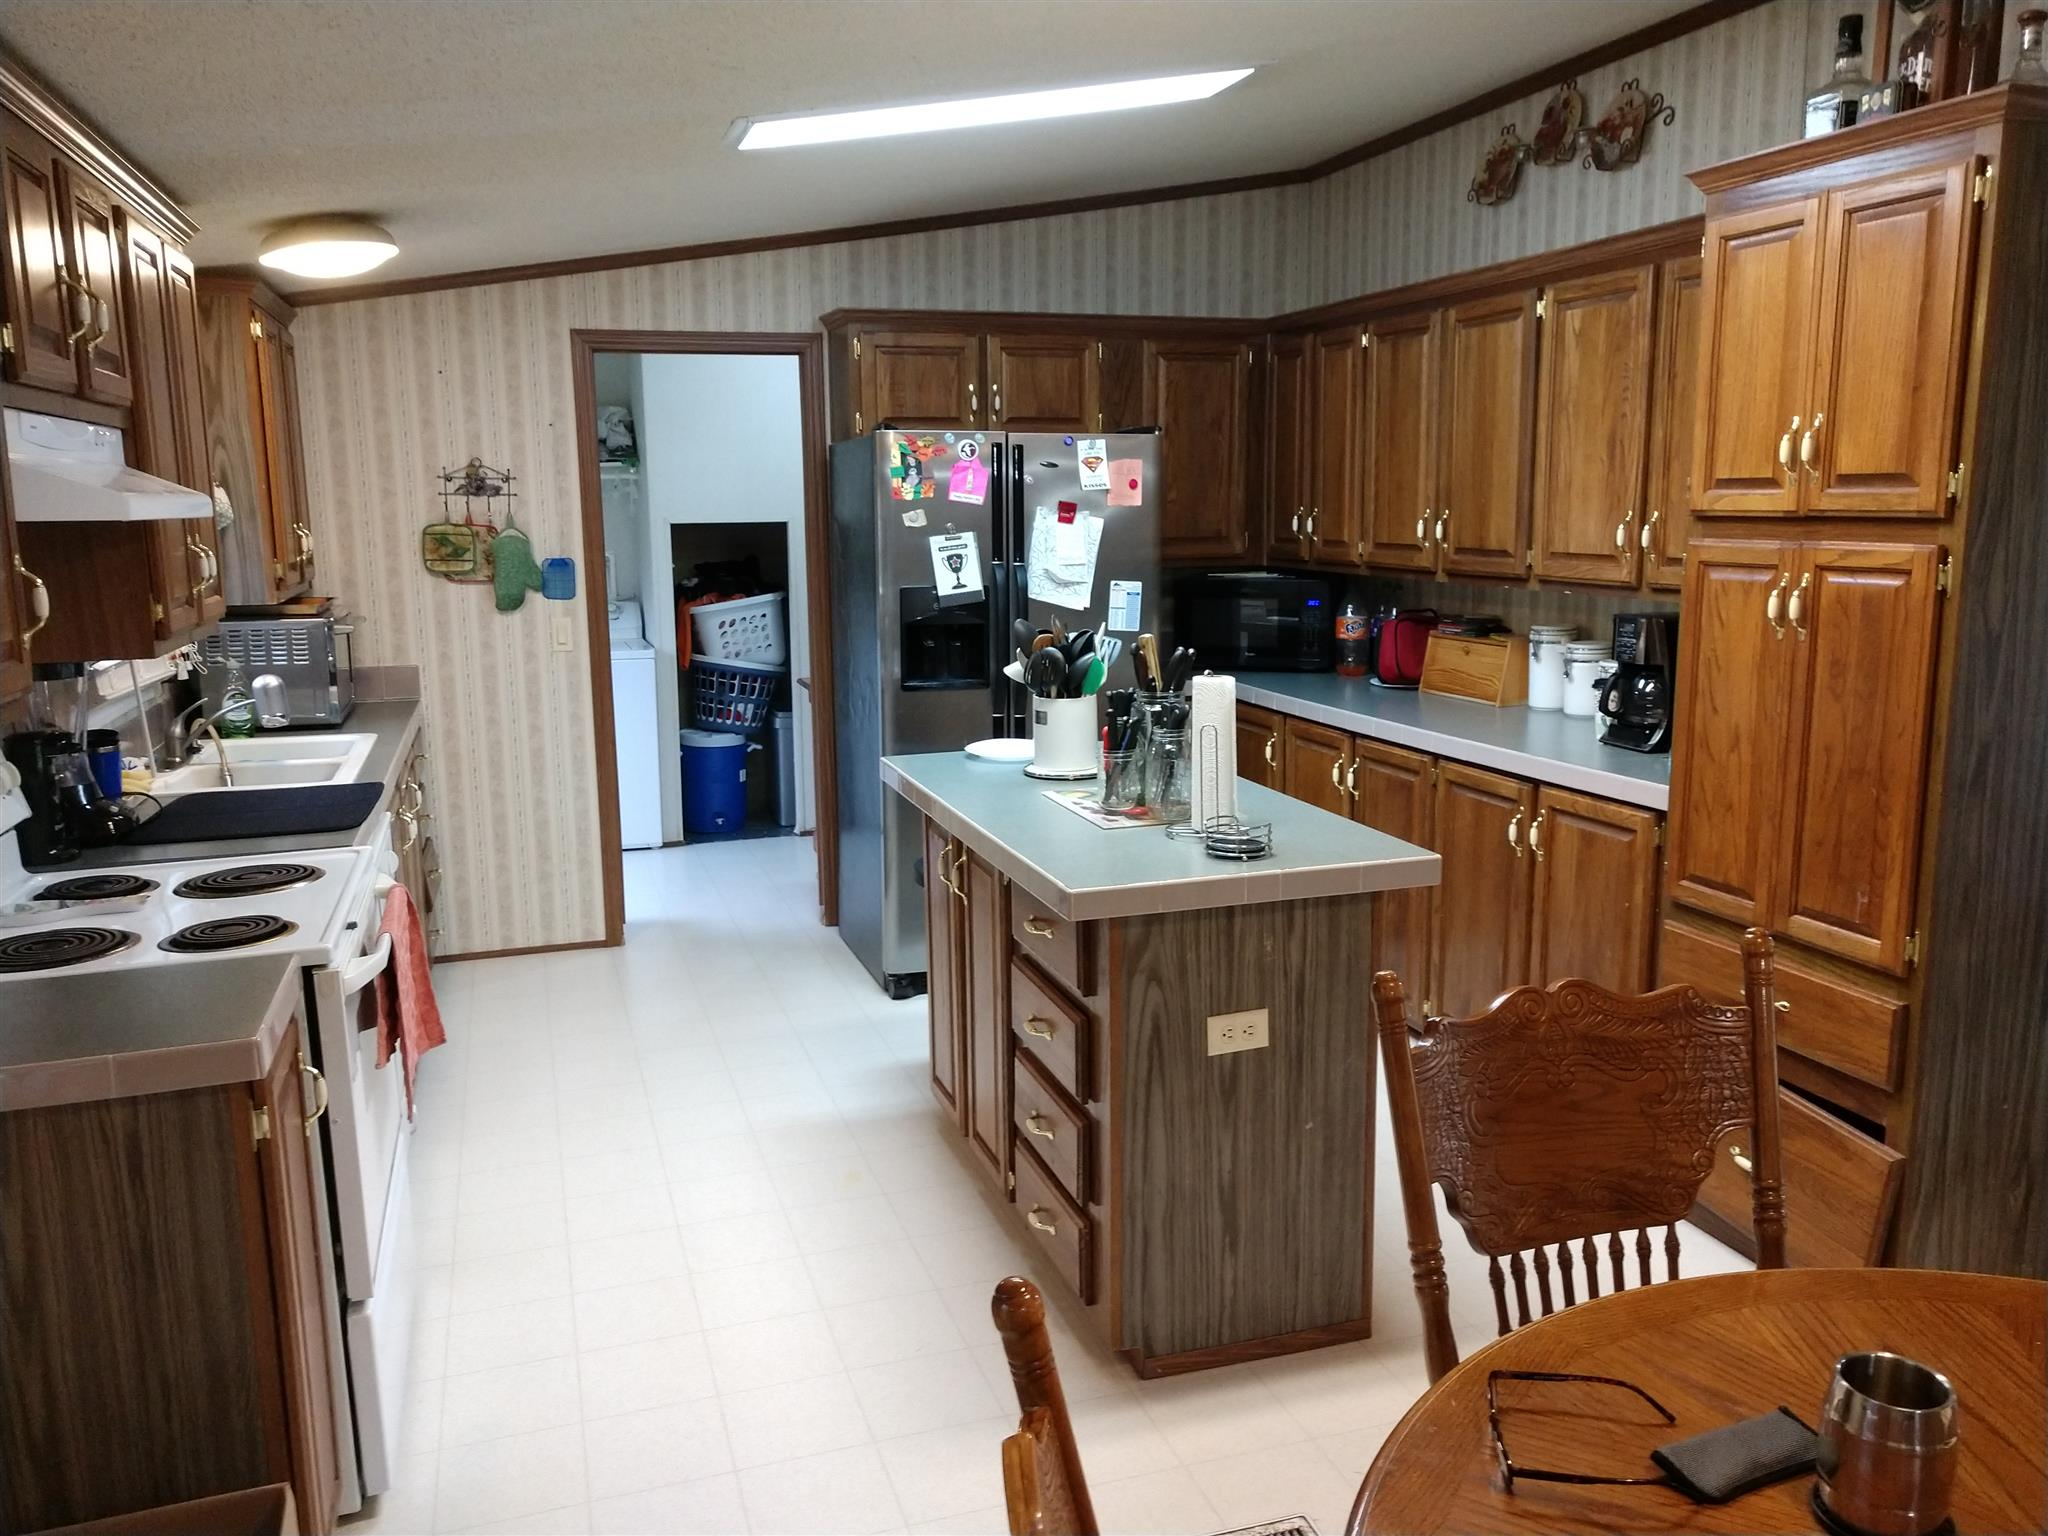 197 Switchboard Rd - photo 14